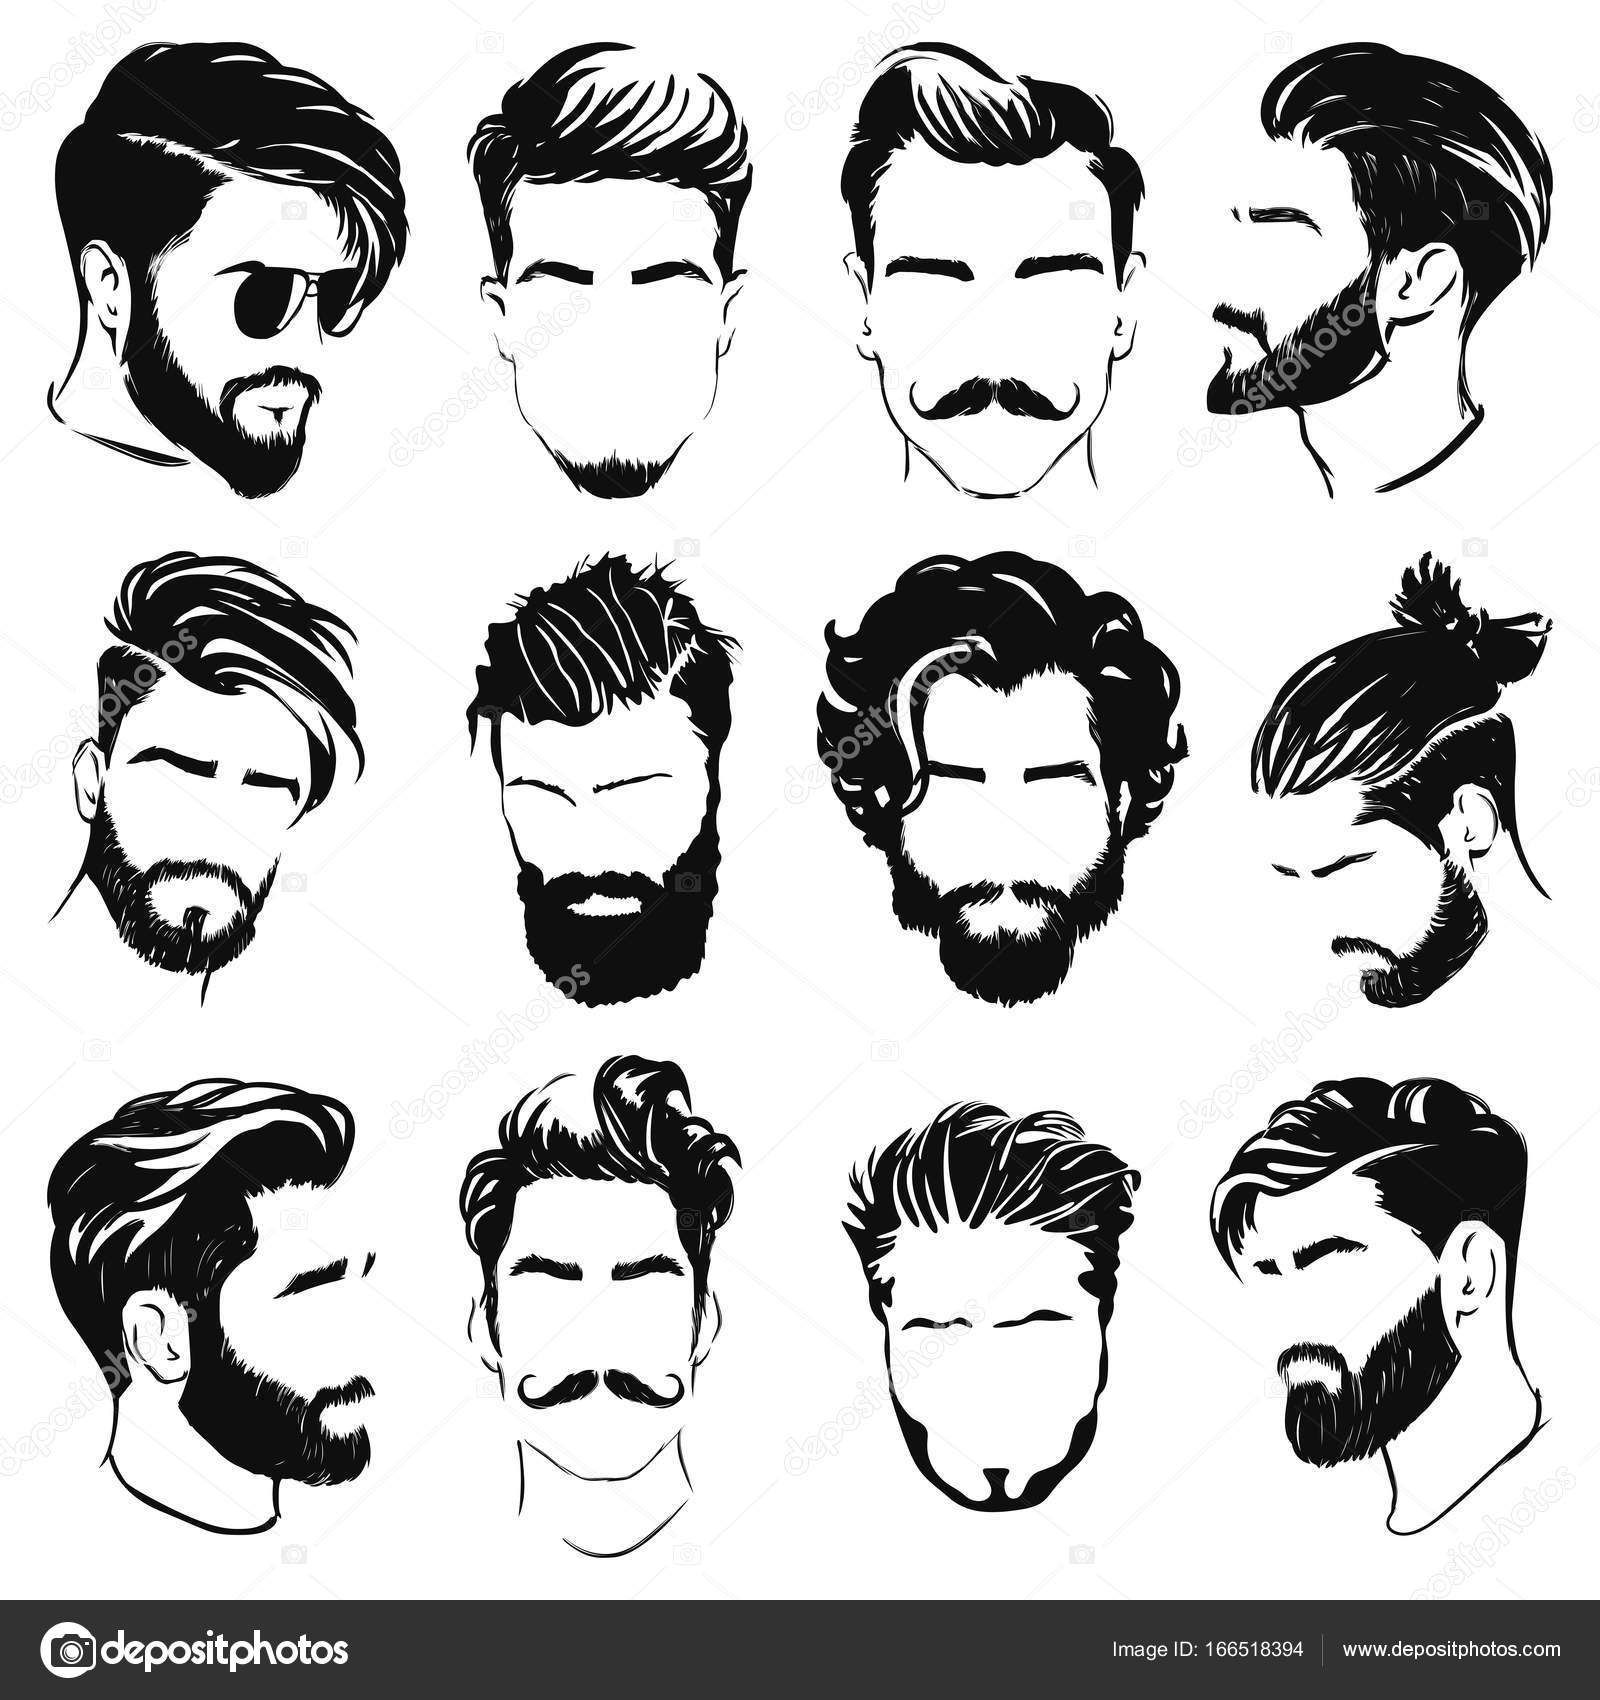 Haircut styles for men 2018